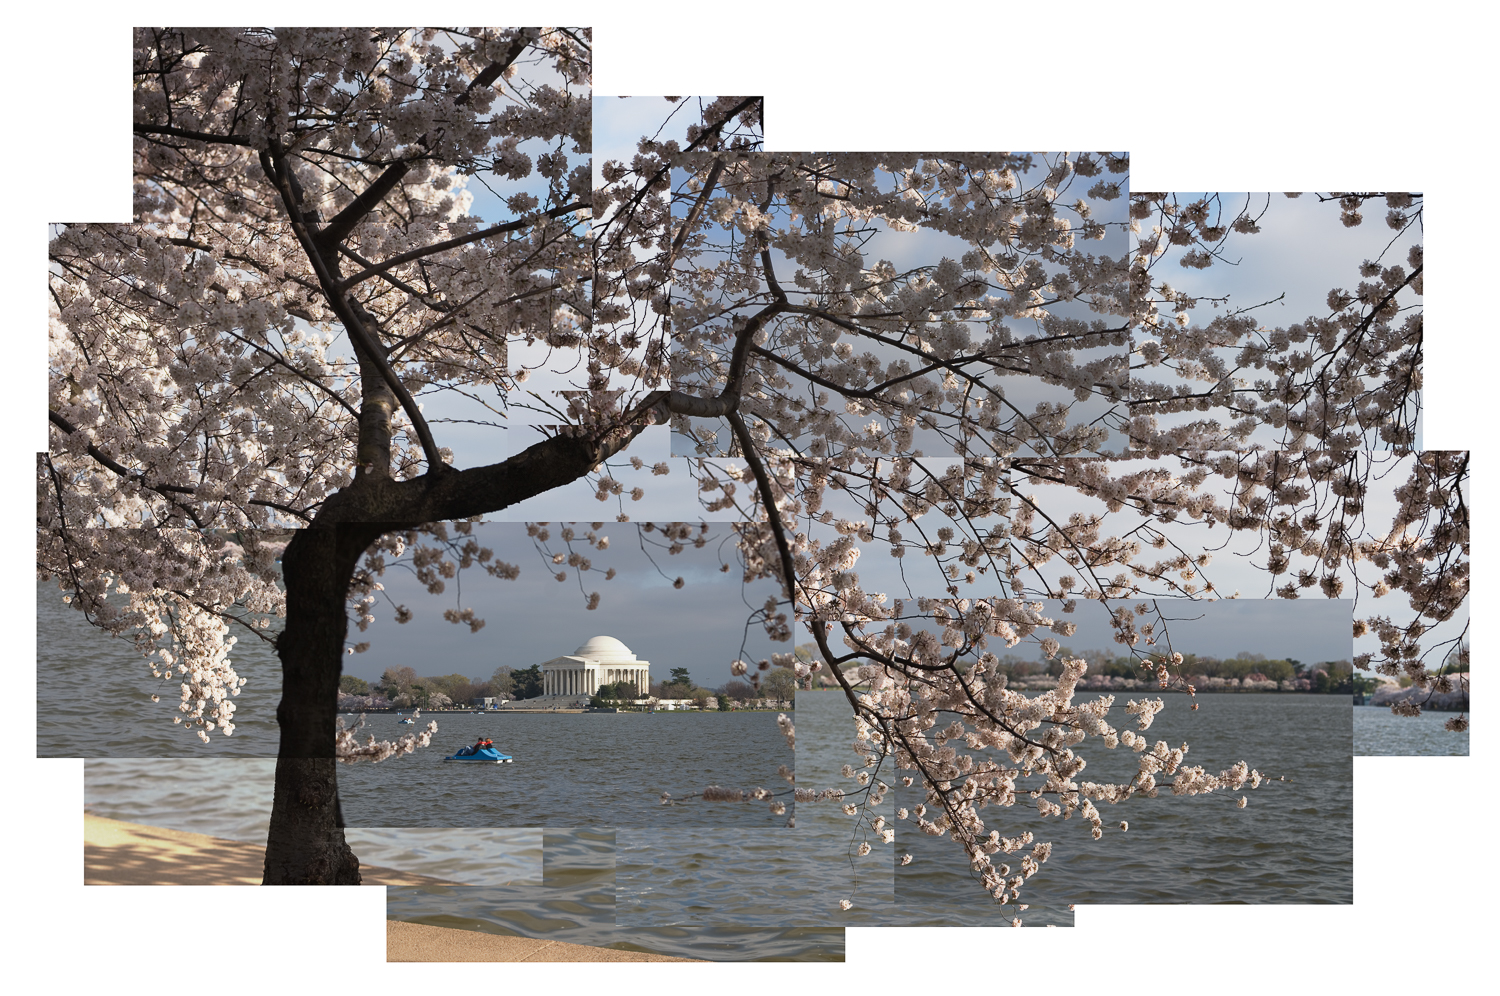 Jason Horowitz  Cherry Blossoms, Tidal Basin, Washington, DC  2004